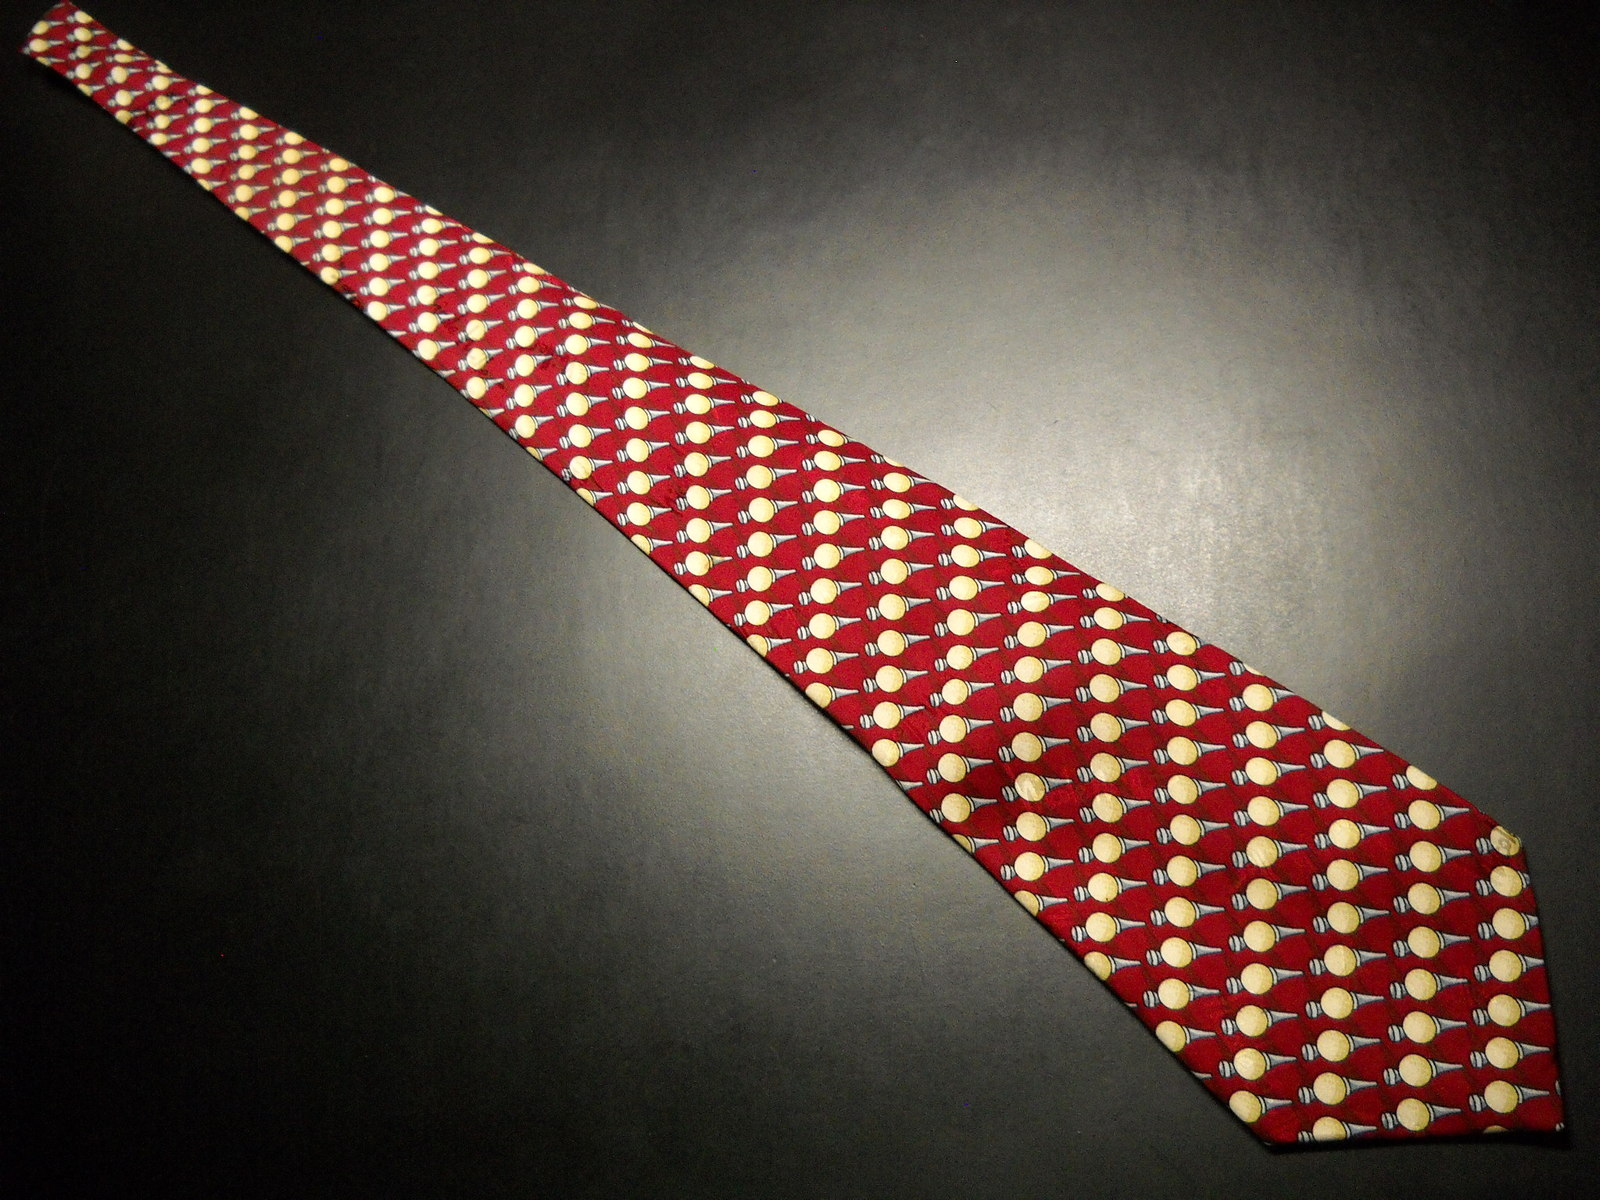 Nicole Miller Neck Tie Repeating Golf Tees Creams Grays Bright Red Background